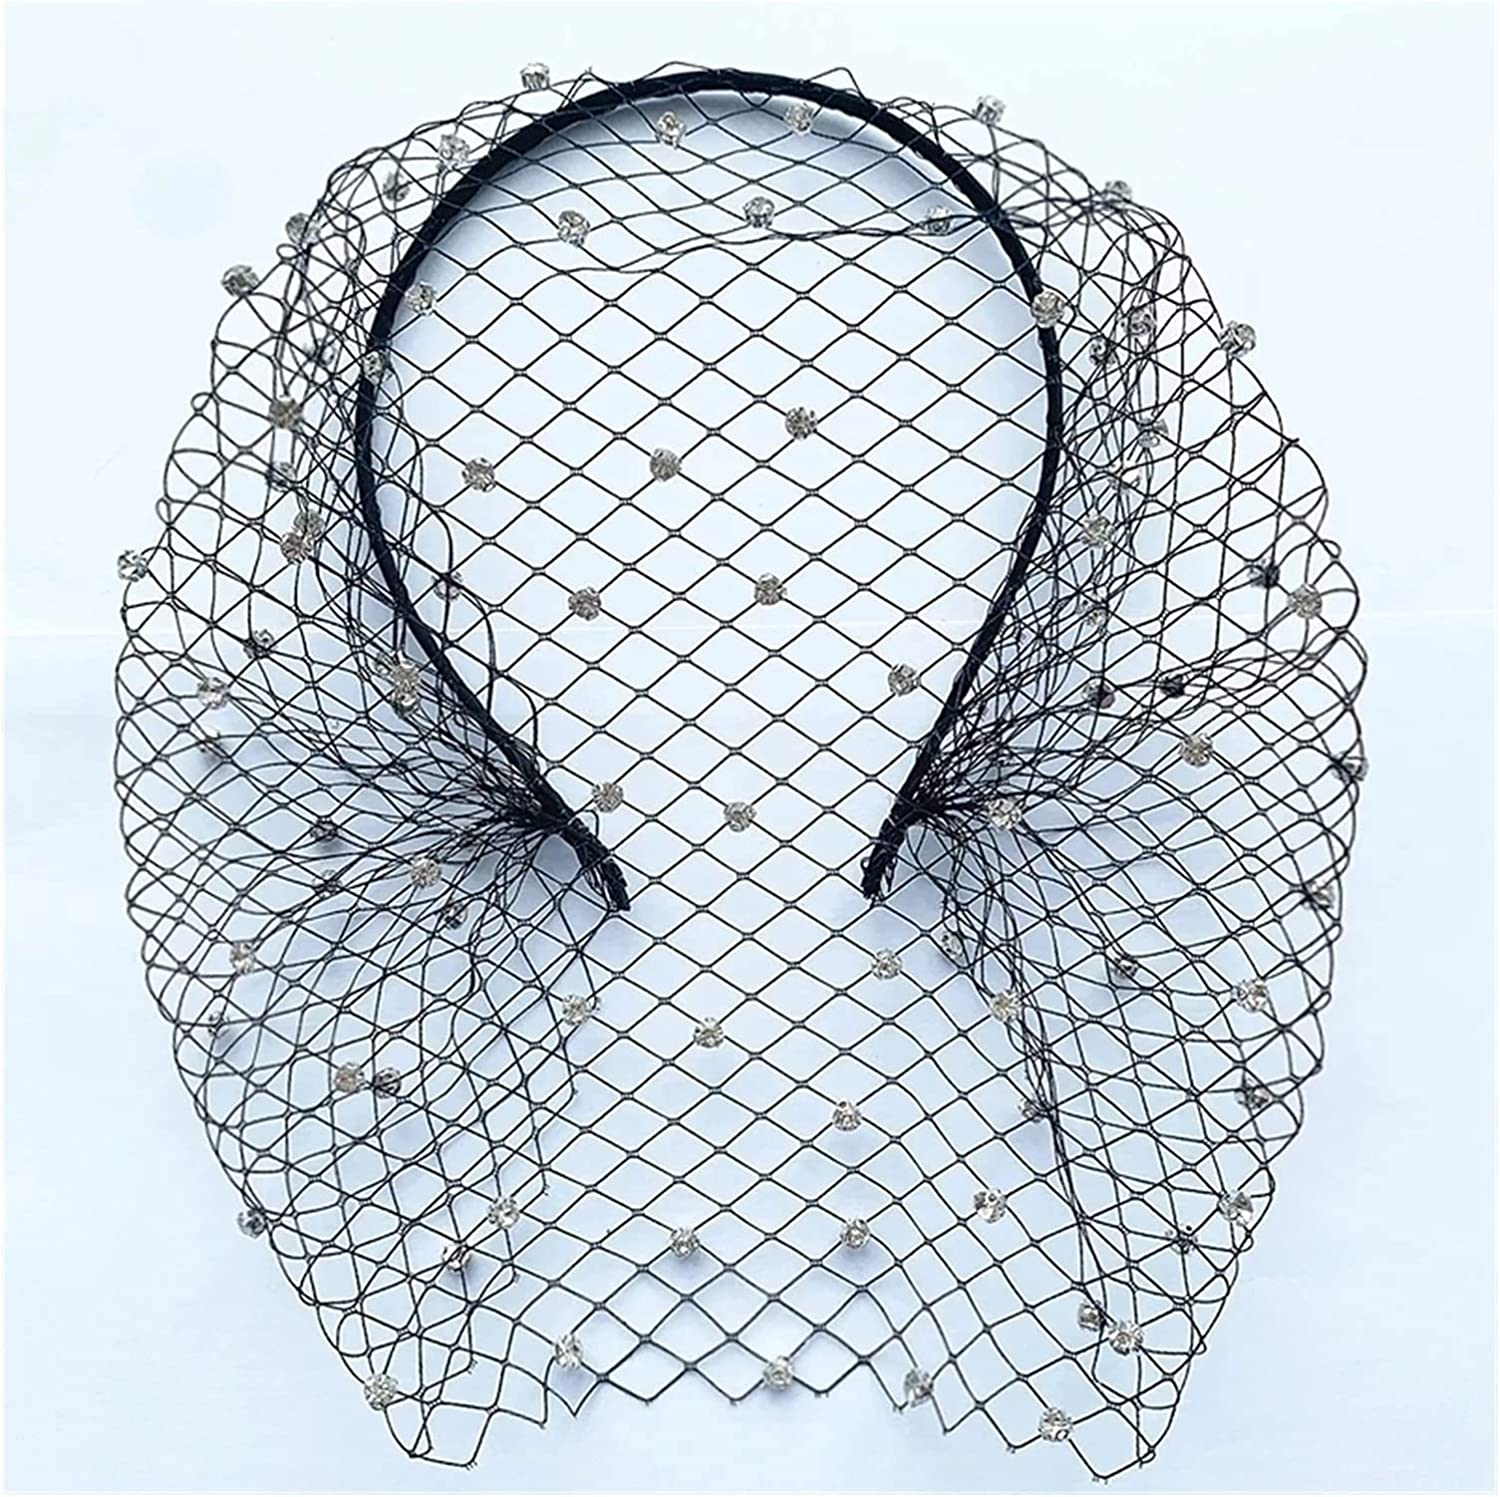 HAQTXI Bridal Crystal Birdcage Black Face Net Mask Hair Jewelry Accessories Veils Charming Wedding Fascinators with Comb for Women and Girls (Color : 1-Black)